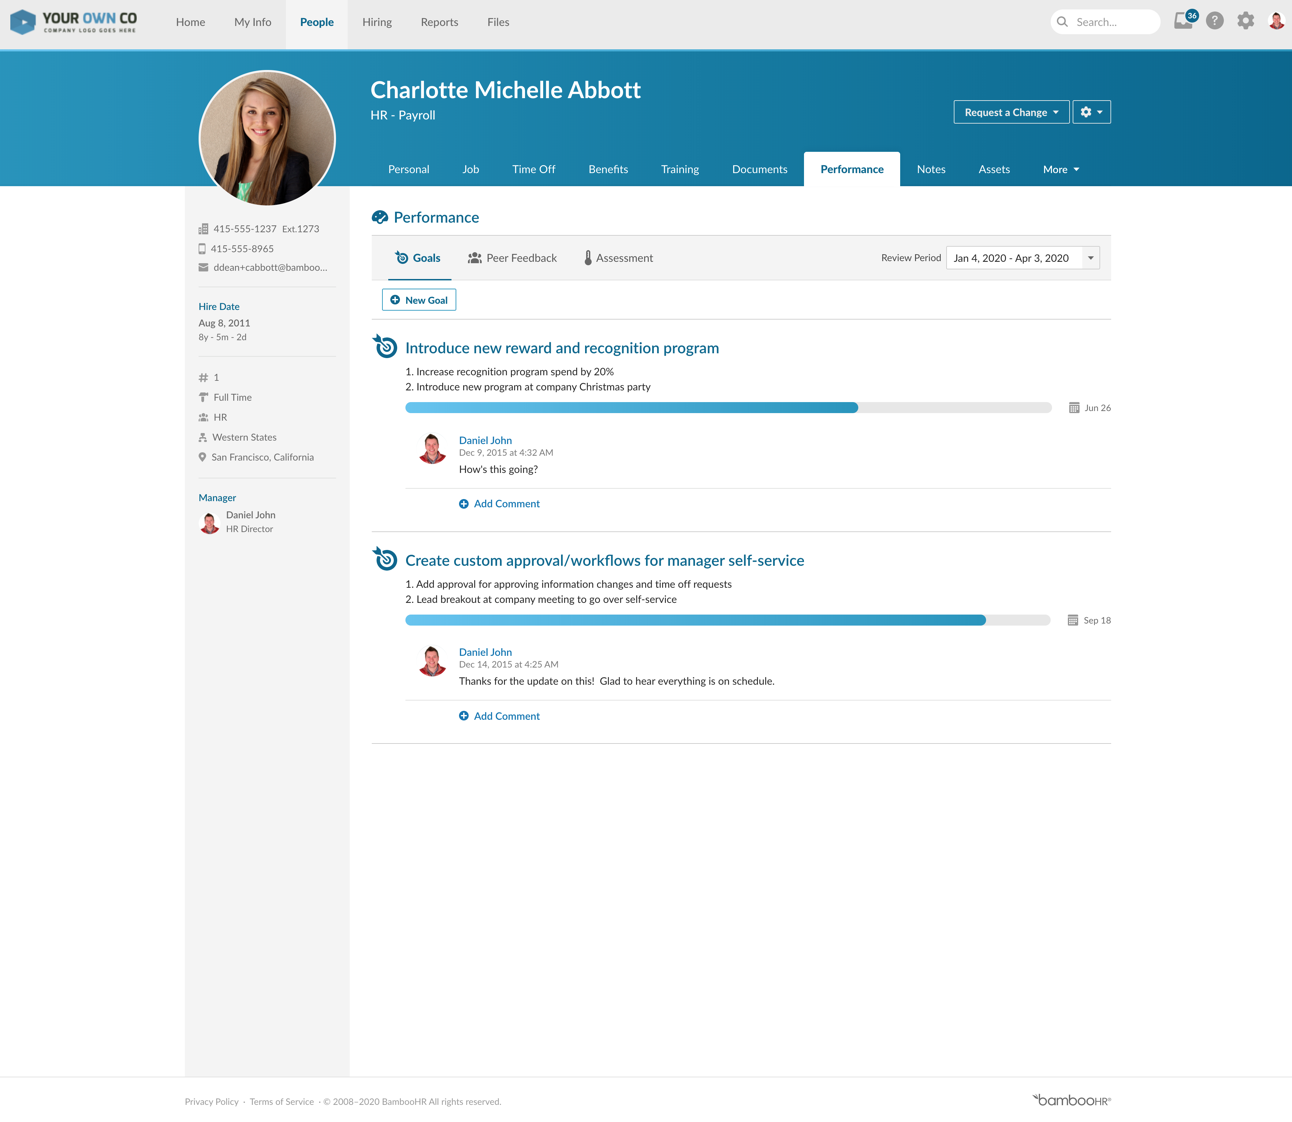 HR Payroll page of BambooHR